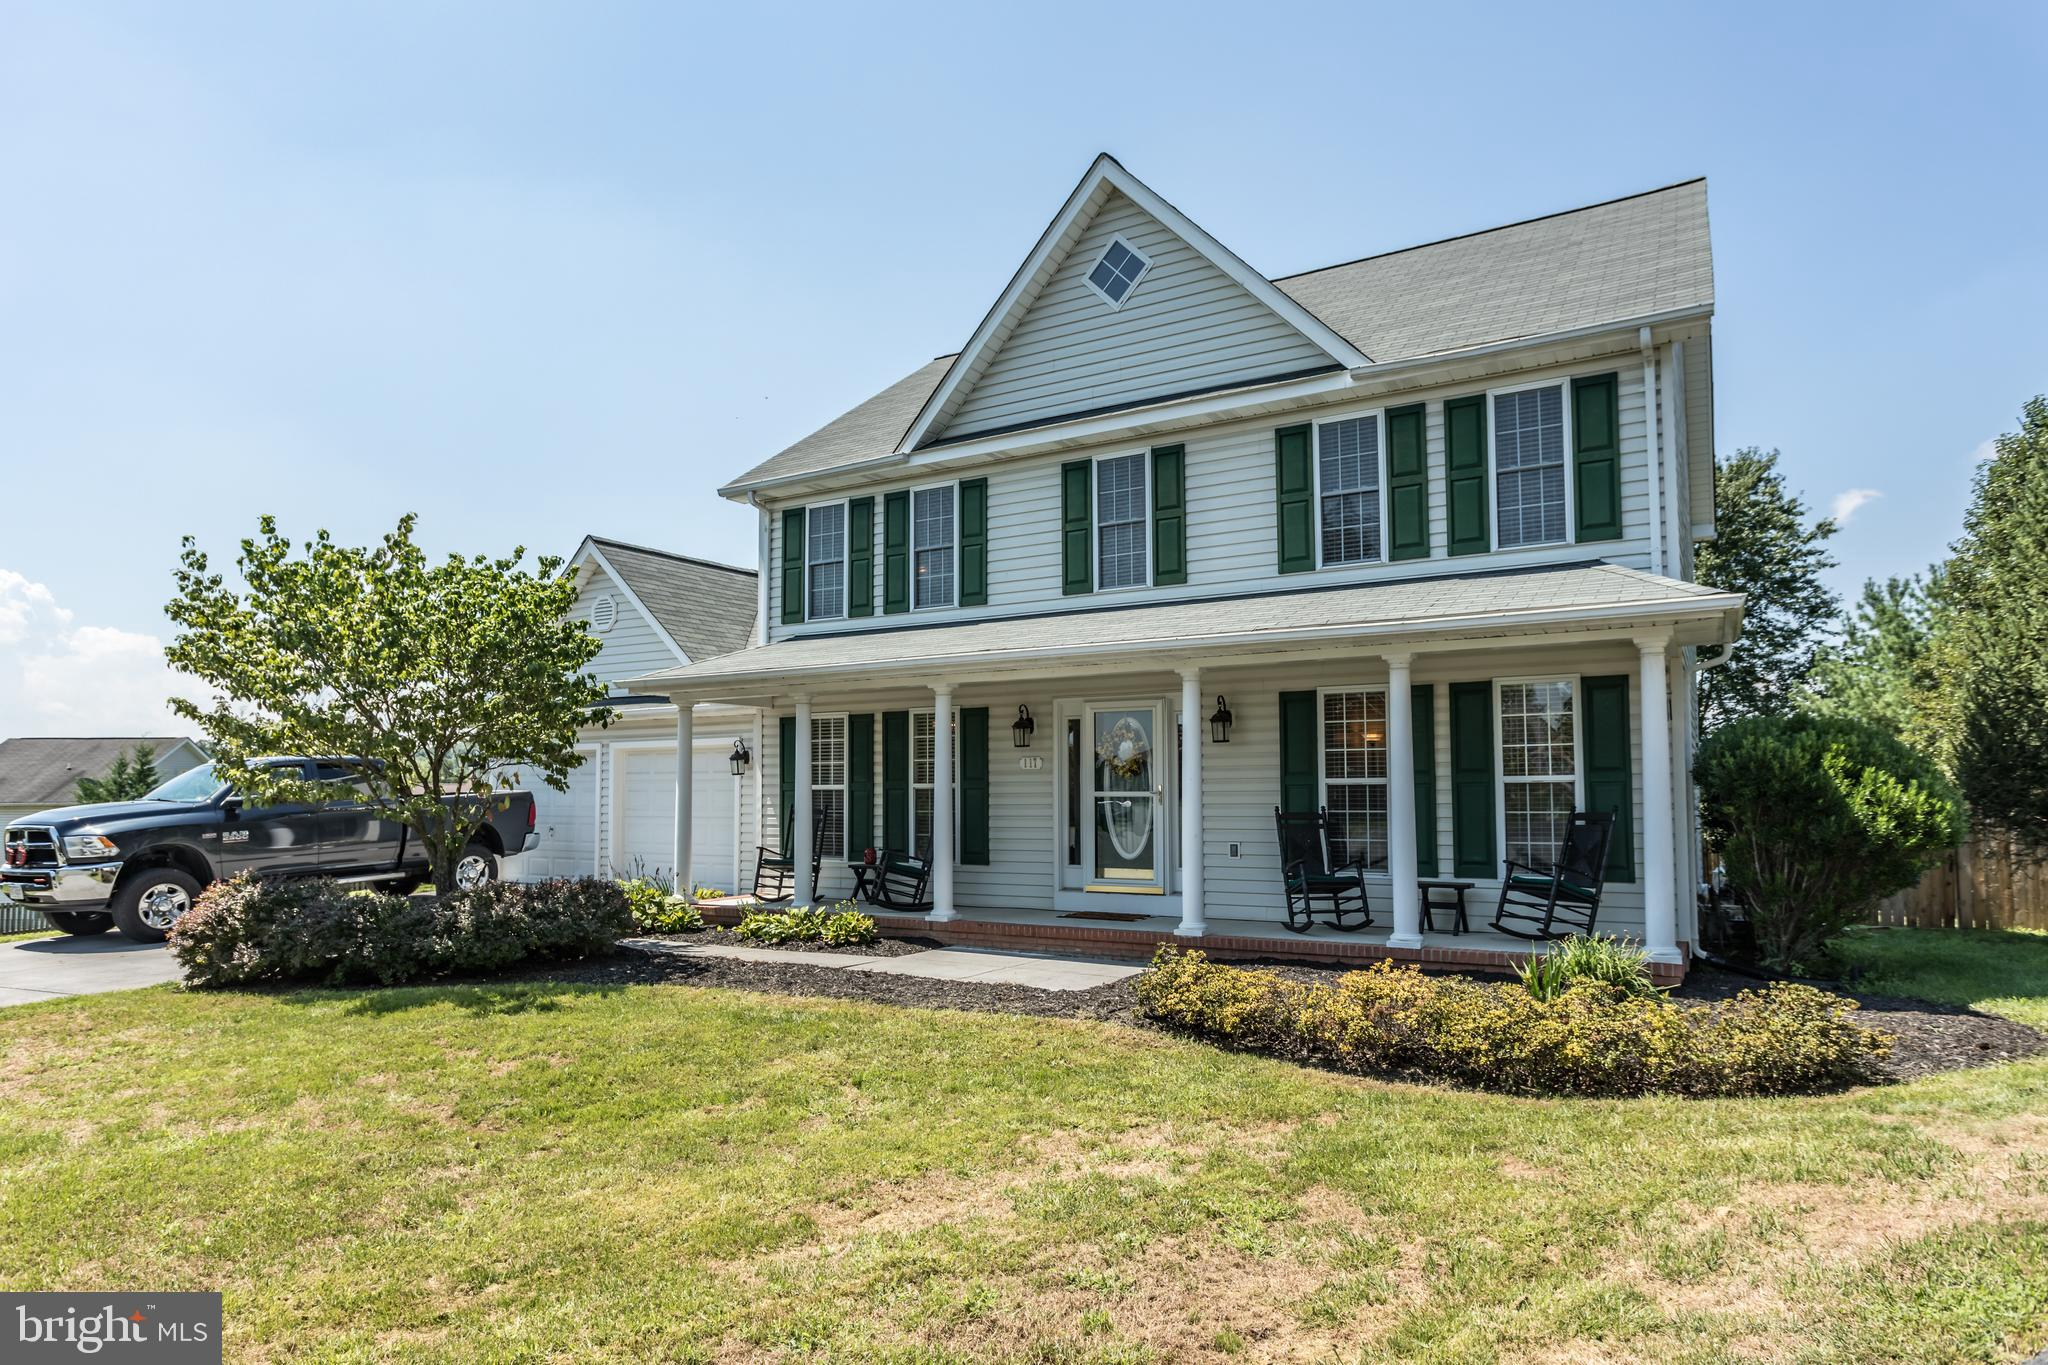 SHOWINGS BEGIN 8/14!! Priced to Sell & MOVE IN READY! Only minutes from Route 7, Interstate 81, and